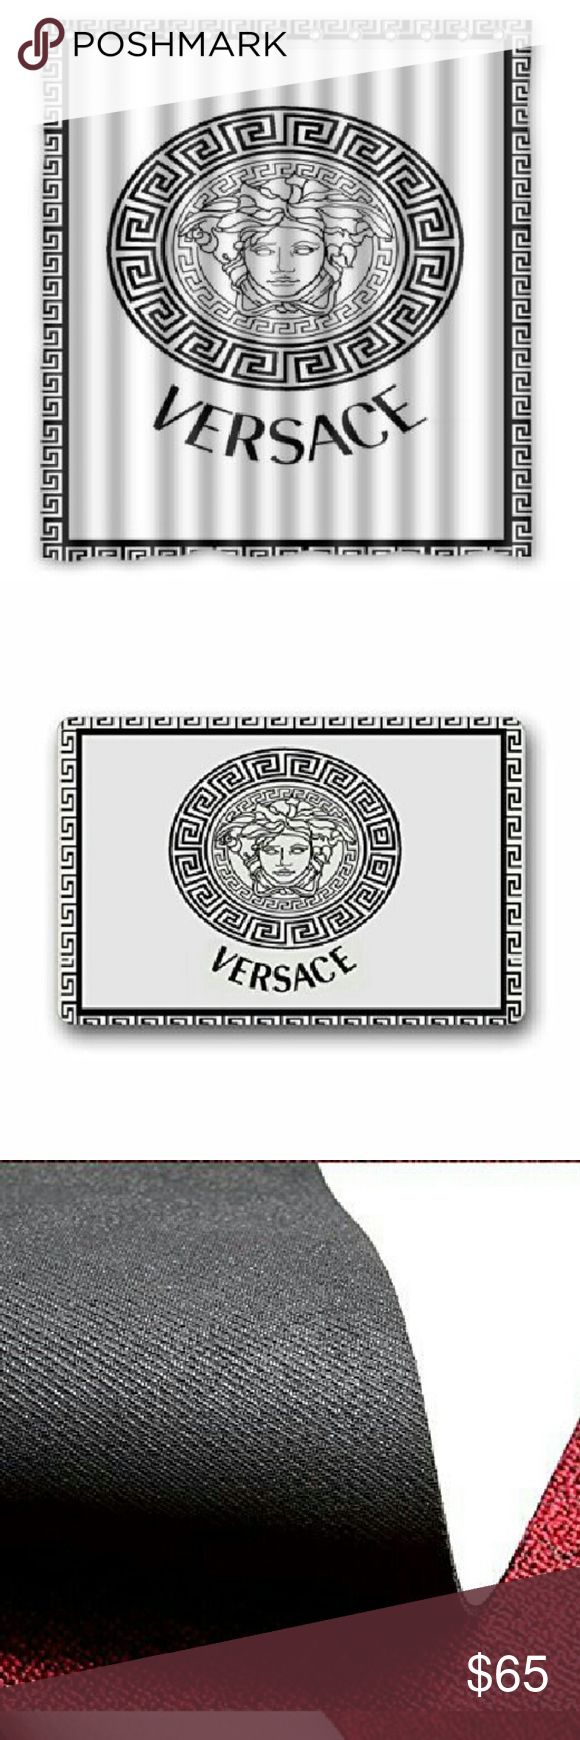 """**Bundle**Fashion Shower Curtain & Fashion Mat Gorgeous retro Versace Shower Curtain Shower 100% WaterProof Polyester Fabric 66"""" x 72"""" Inches & Custom retro Versace Machine Washable Top Fabric Non-slip Rubber Bathroom Doormat Size 23.6x15.7 Other"""